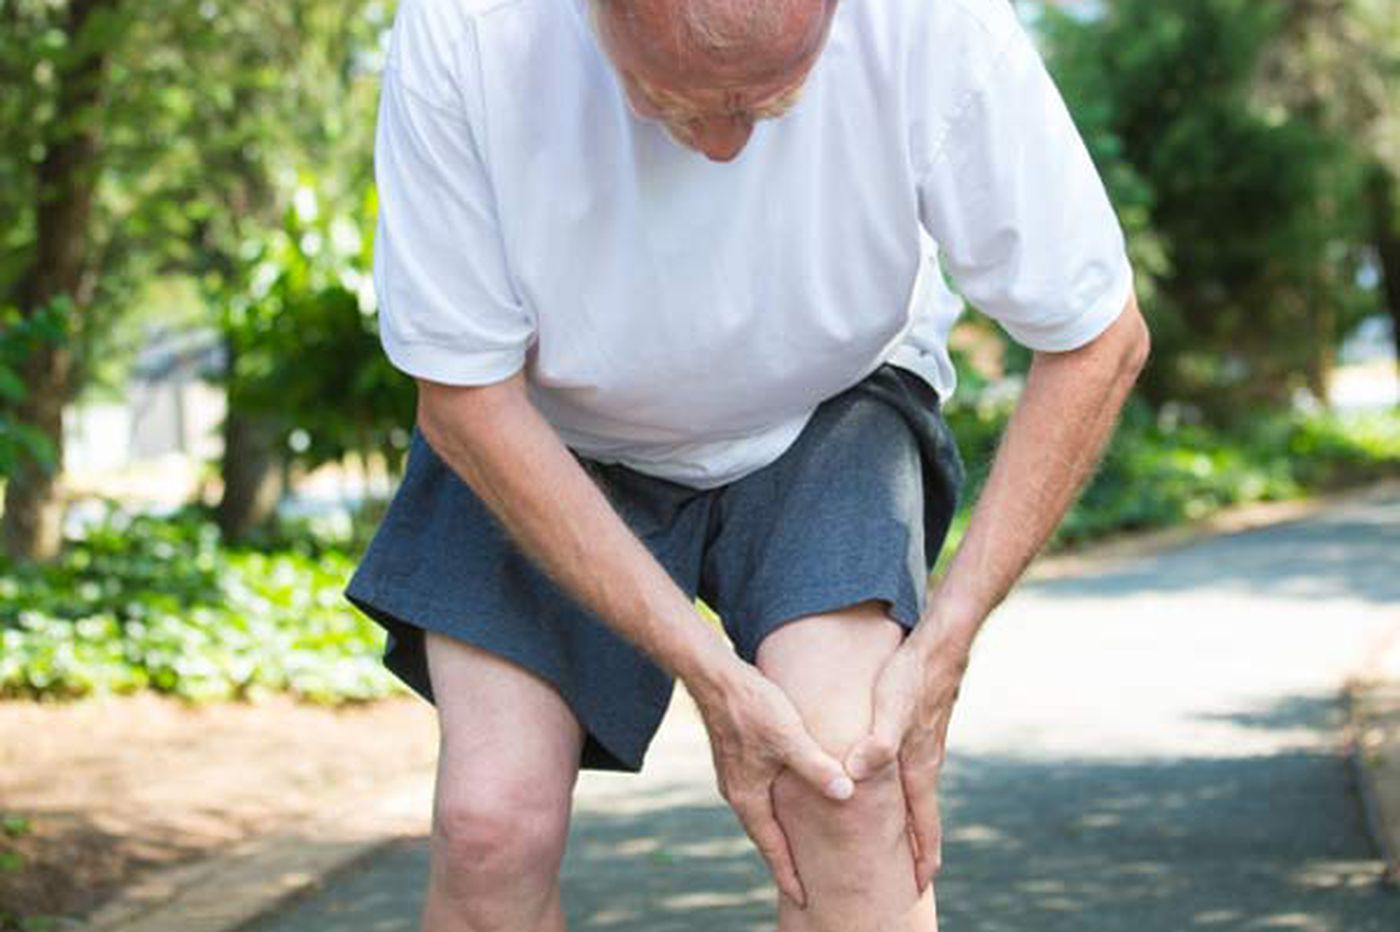 Q&A: What can I do to limit joint pain from arthritis?